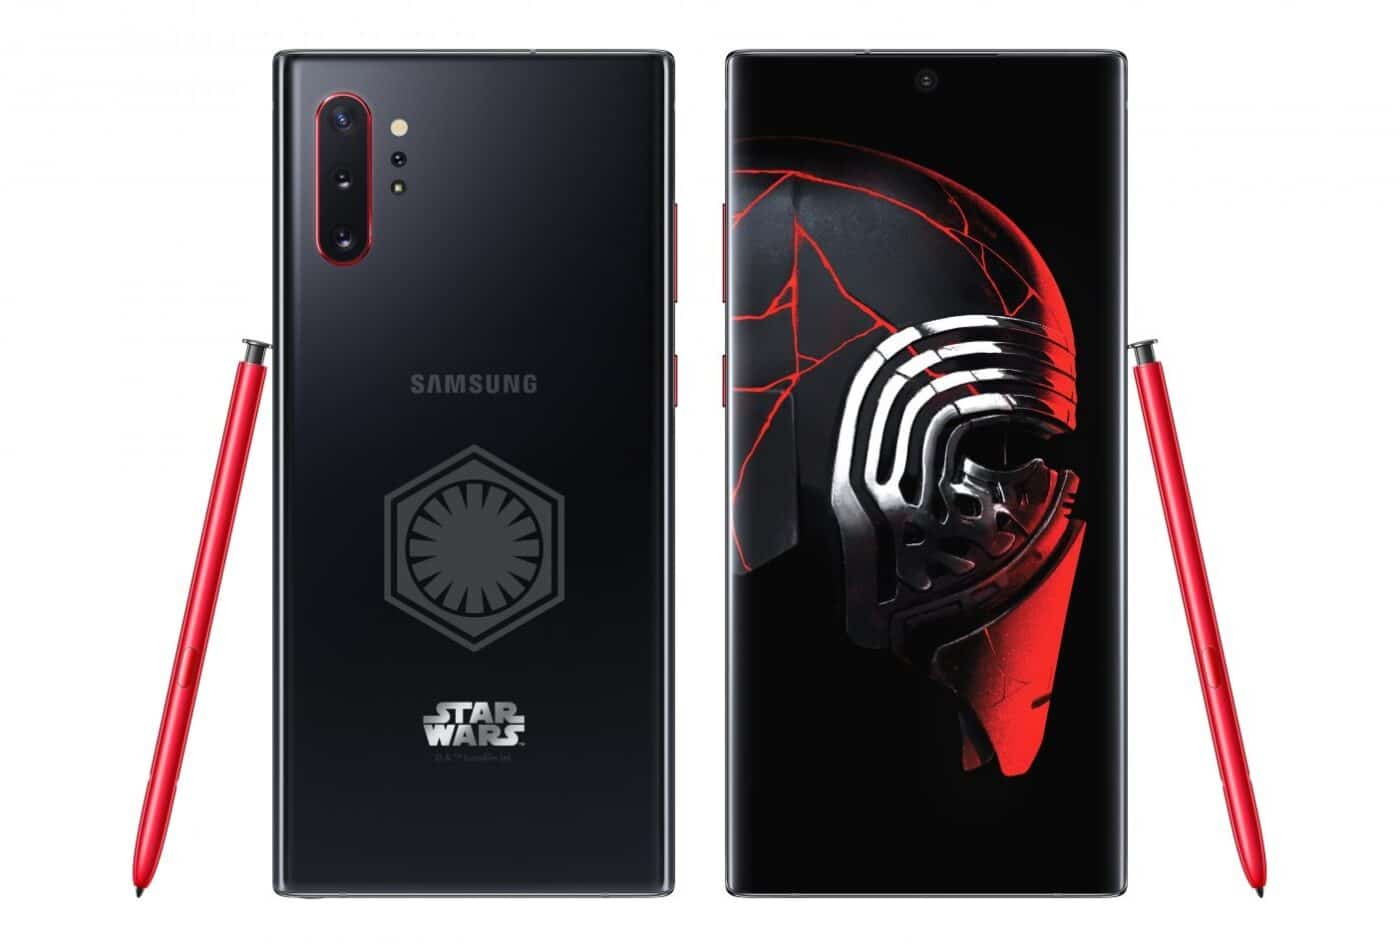 StarWars Edition Note10